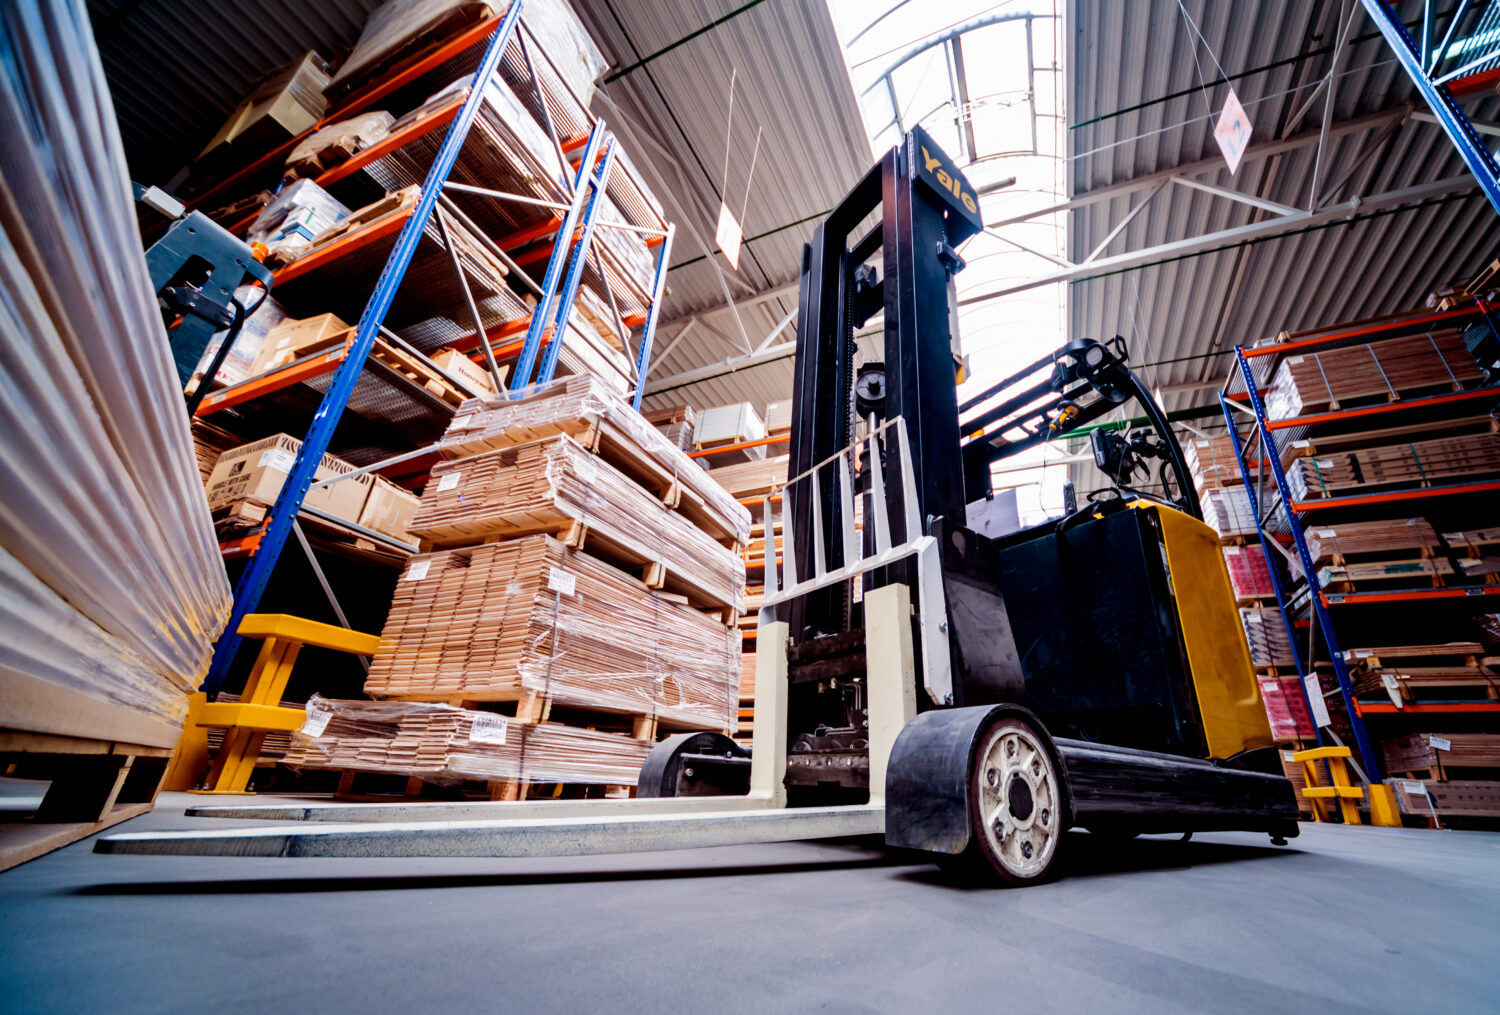 Forklift loader in storage warehouse ship yard. Distribution products. Delivery. Logistics. Transportation. Business background